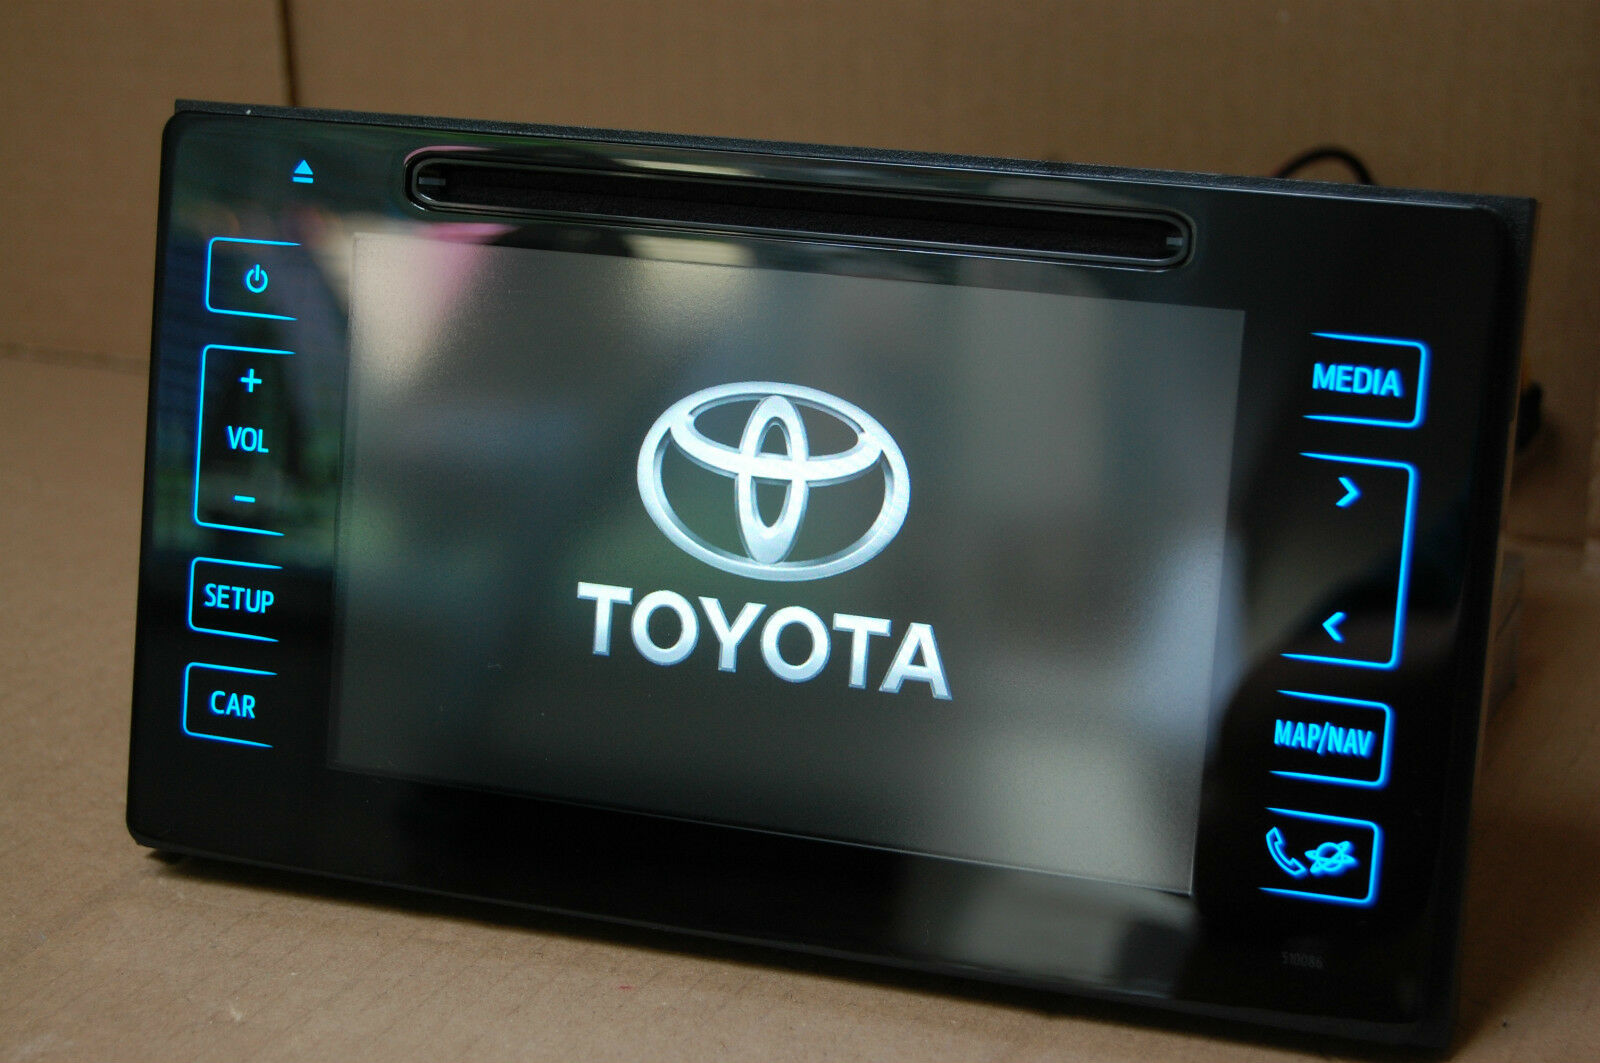 genuine toyota auris touch go 2 radio dab hybrid 2015 2016 sat nav eur 537 97 picclick fr. Black Bedroom Furniture Sets. Home Design Ideas